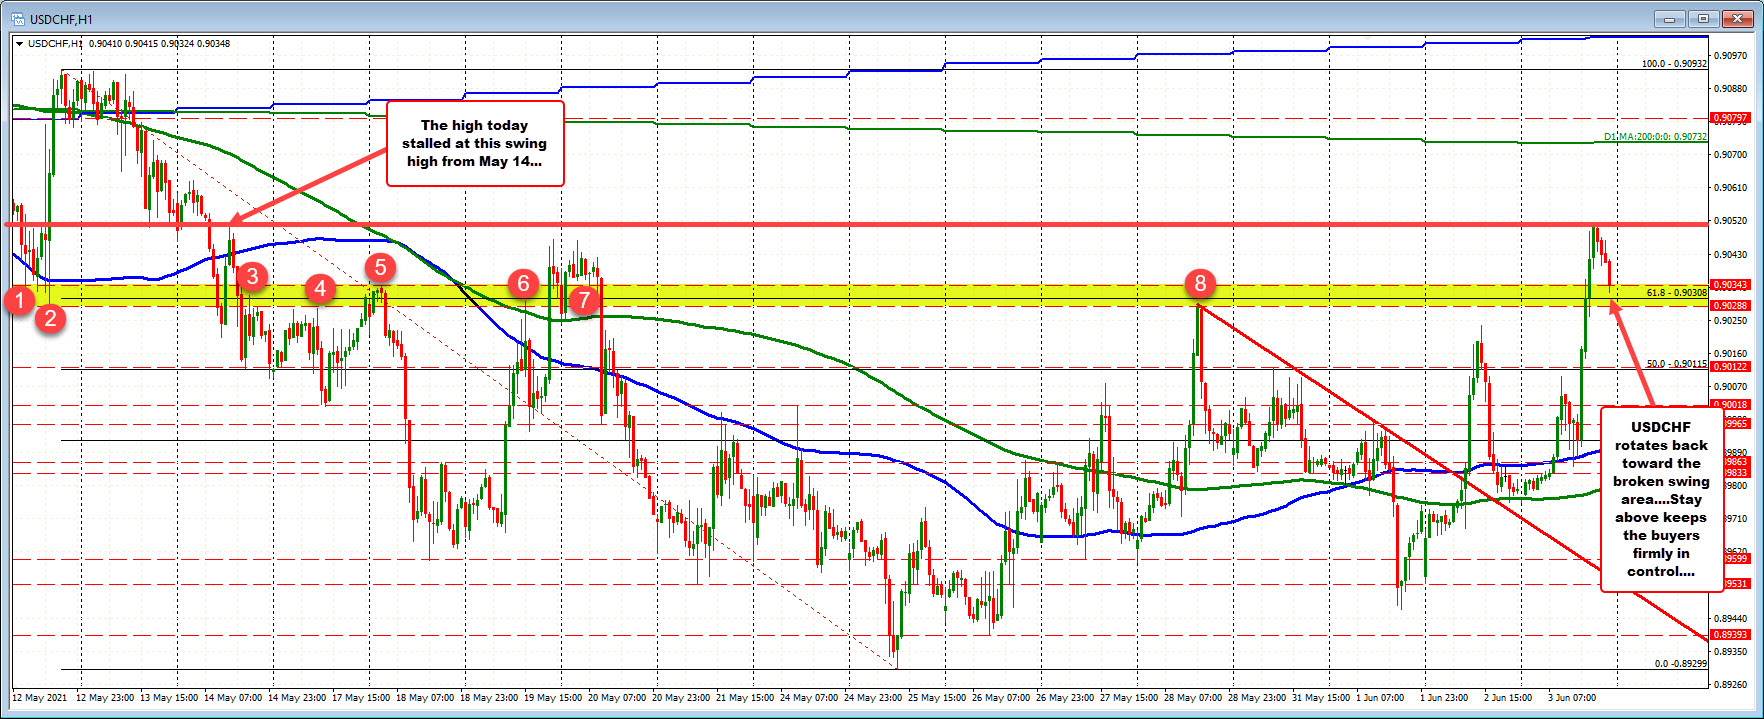 USDCHF retraces back into swing area on the hourly chart